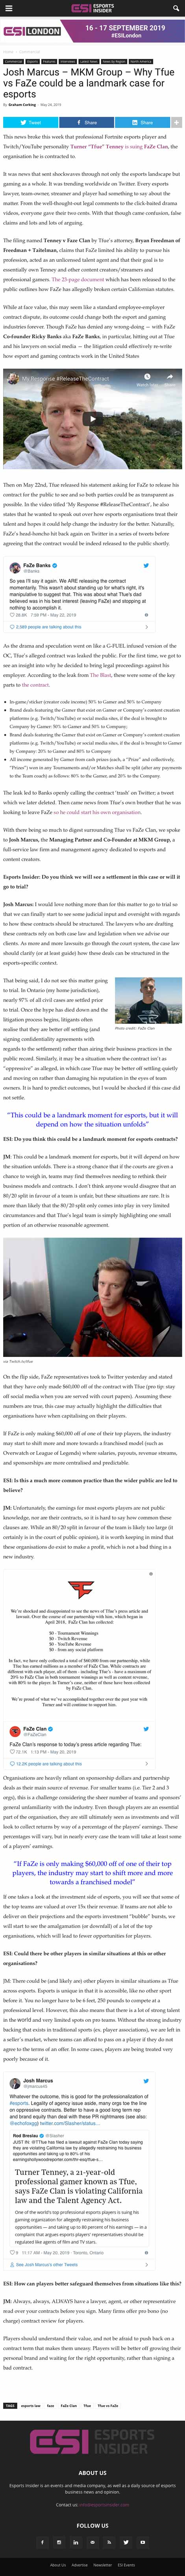 Josh Marcus – MKM Group – Why Tfue vs FaZe could be a landmark case for esports - article by eSportsInsider.com